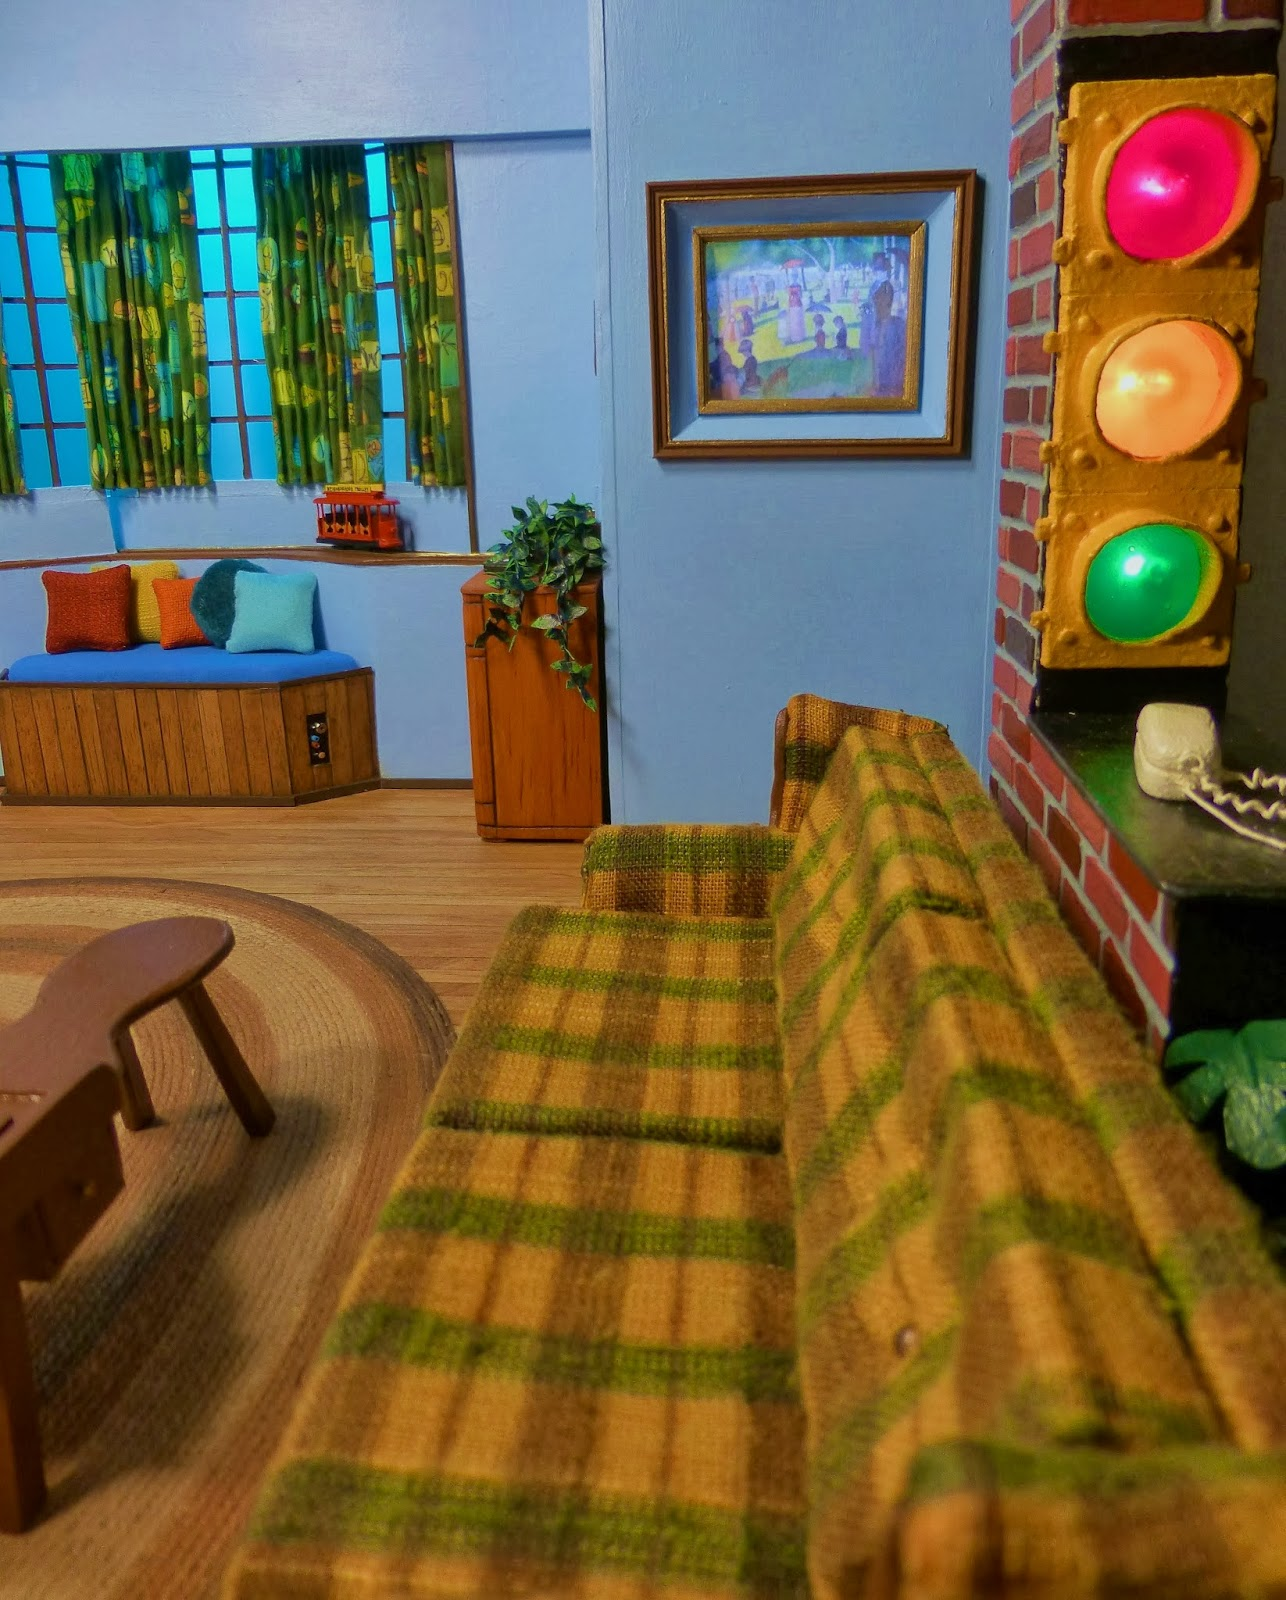 I Created This Model From Scratch, Including Furniture, Plants, Carpets,  Etc.